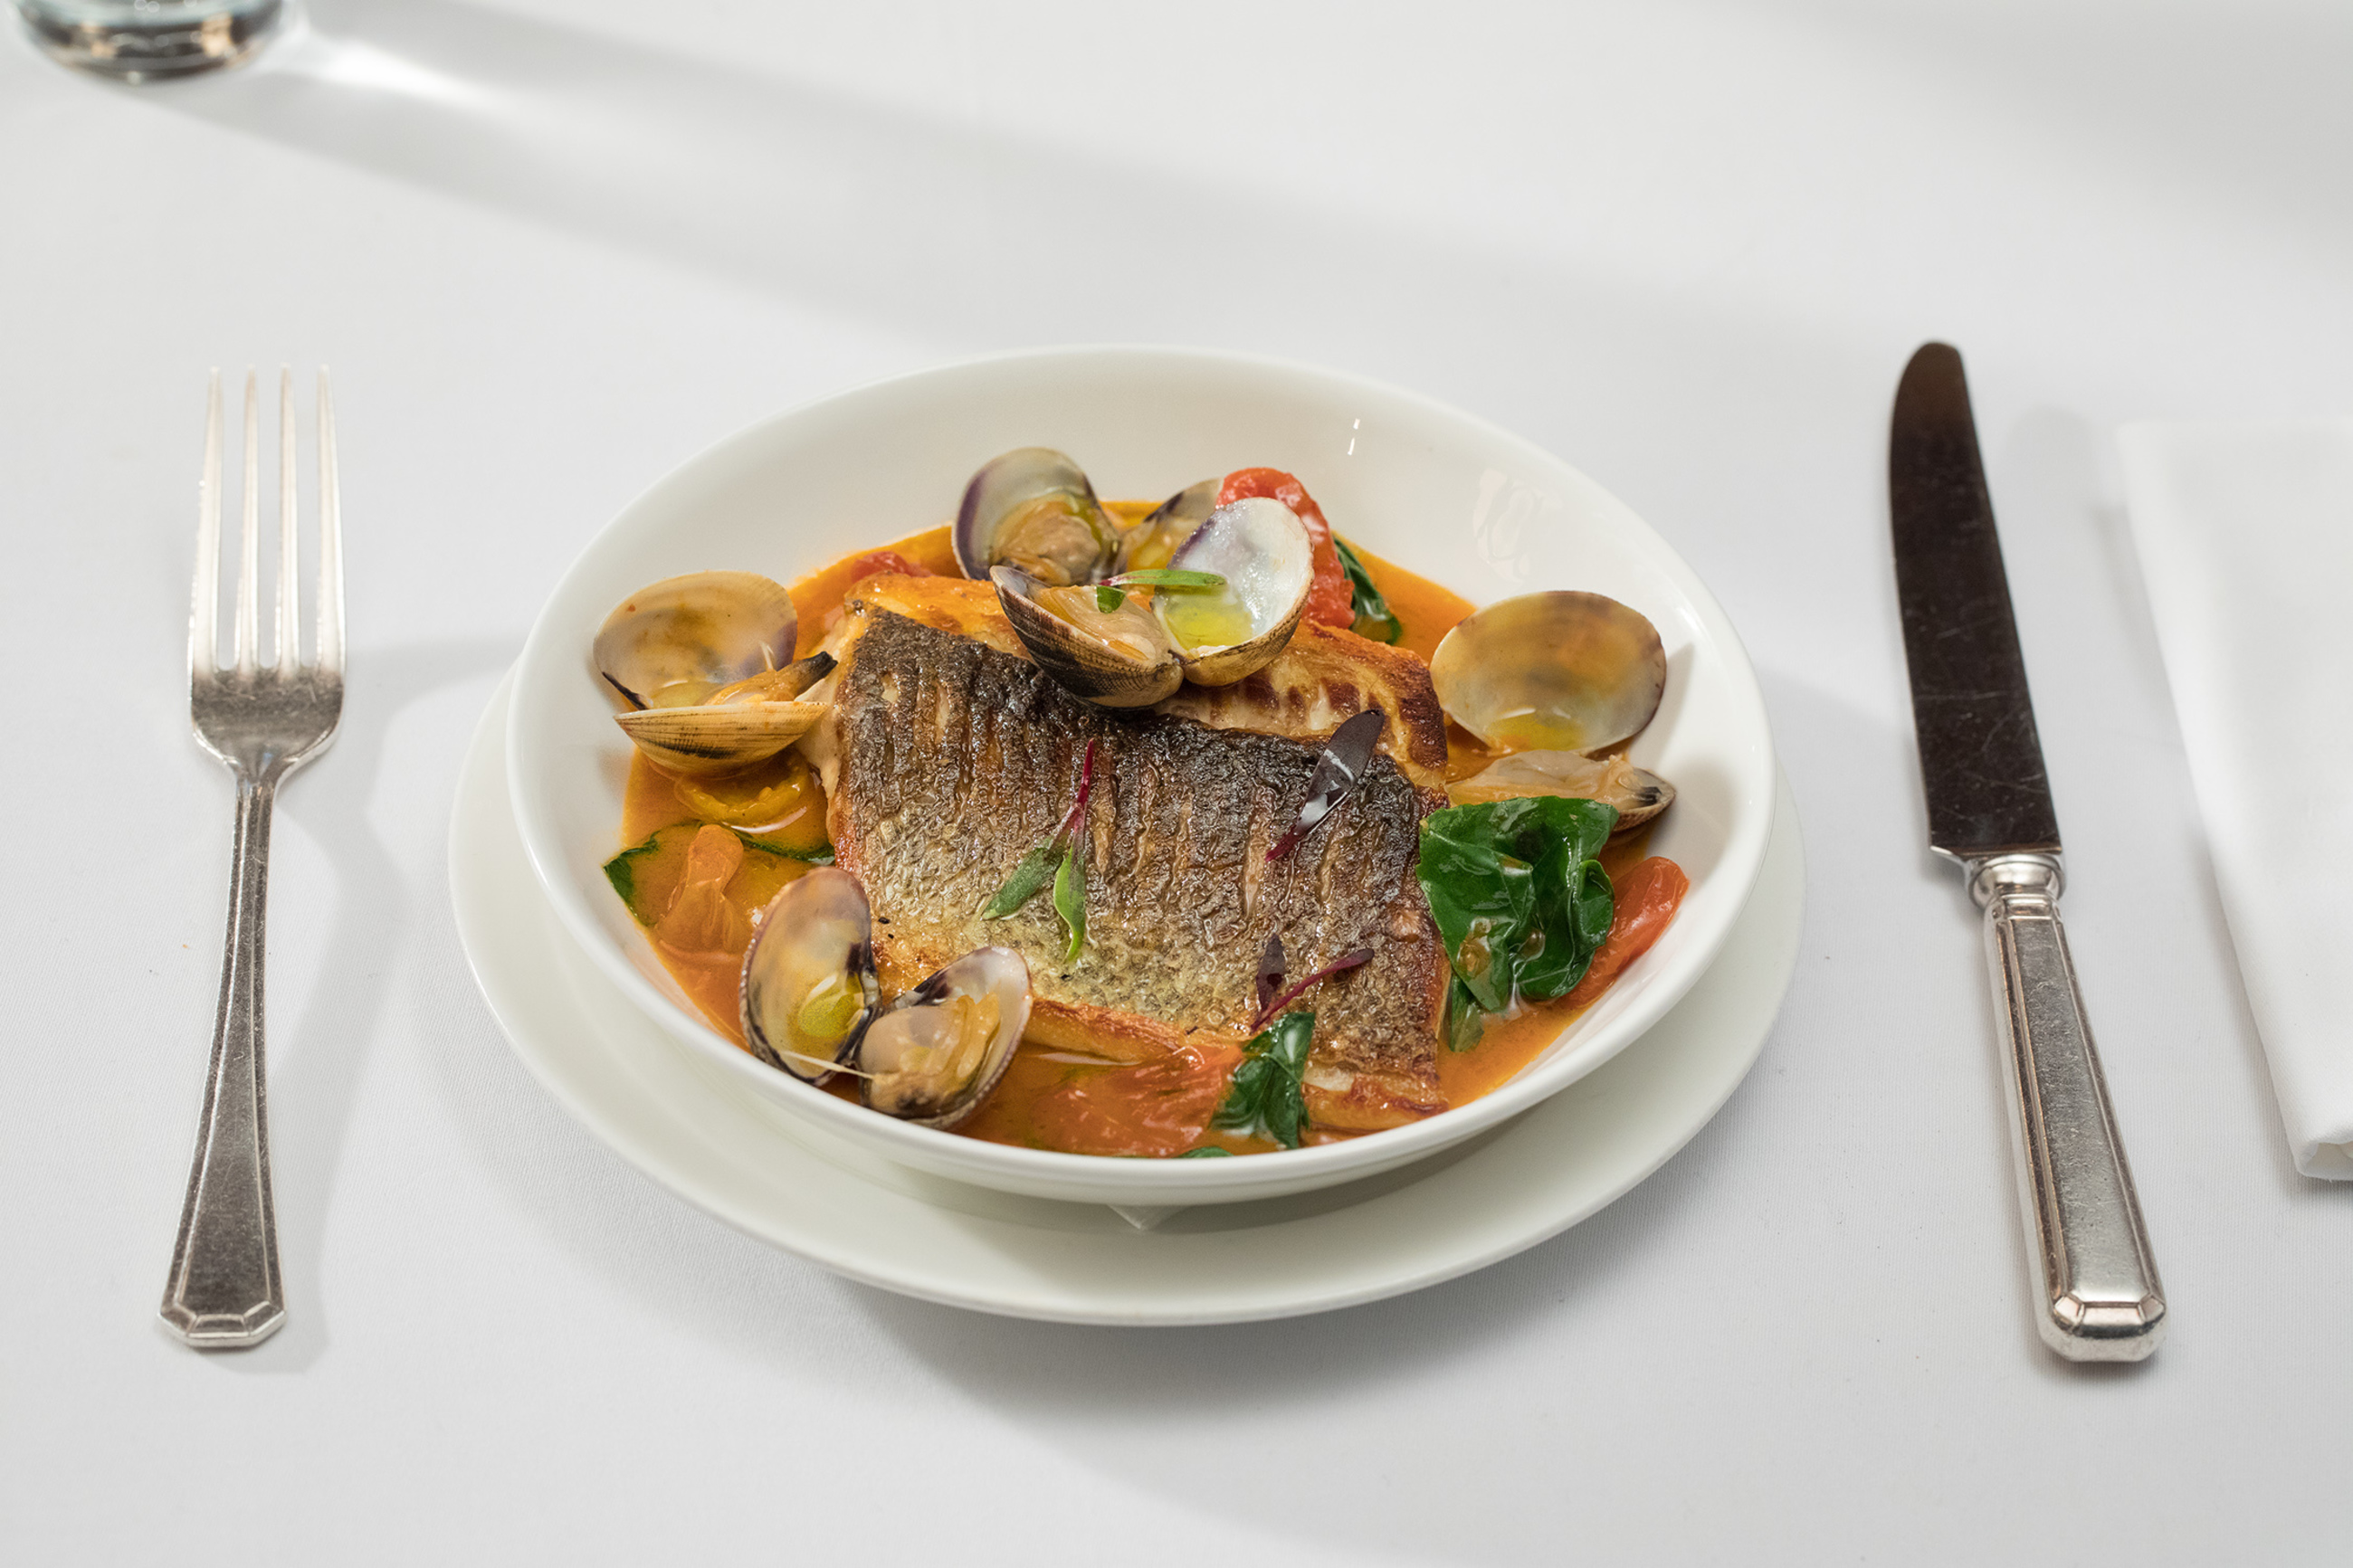 Sea bass, clams and tomato